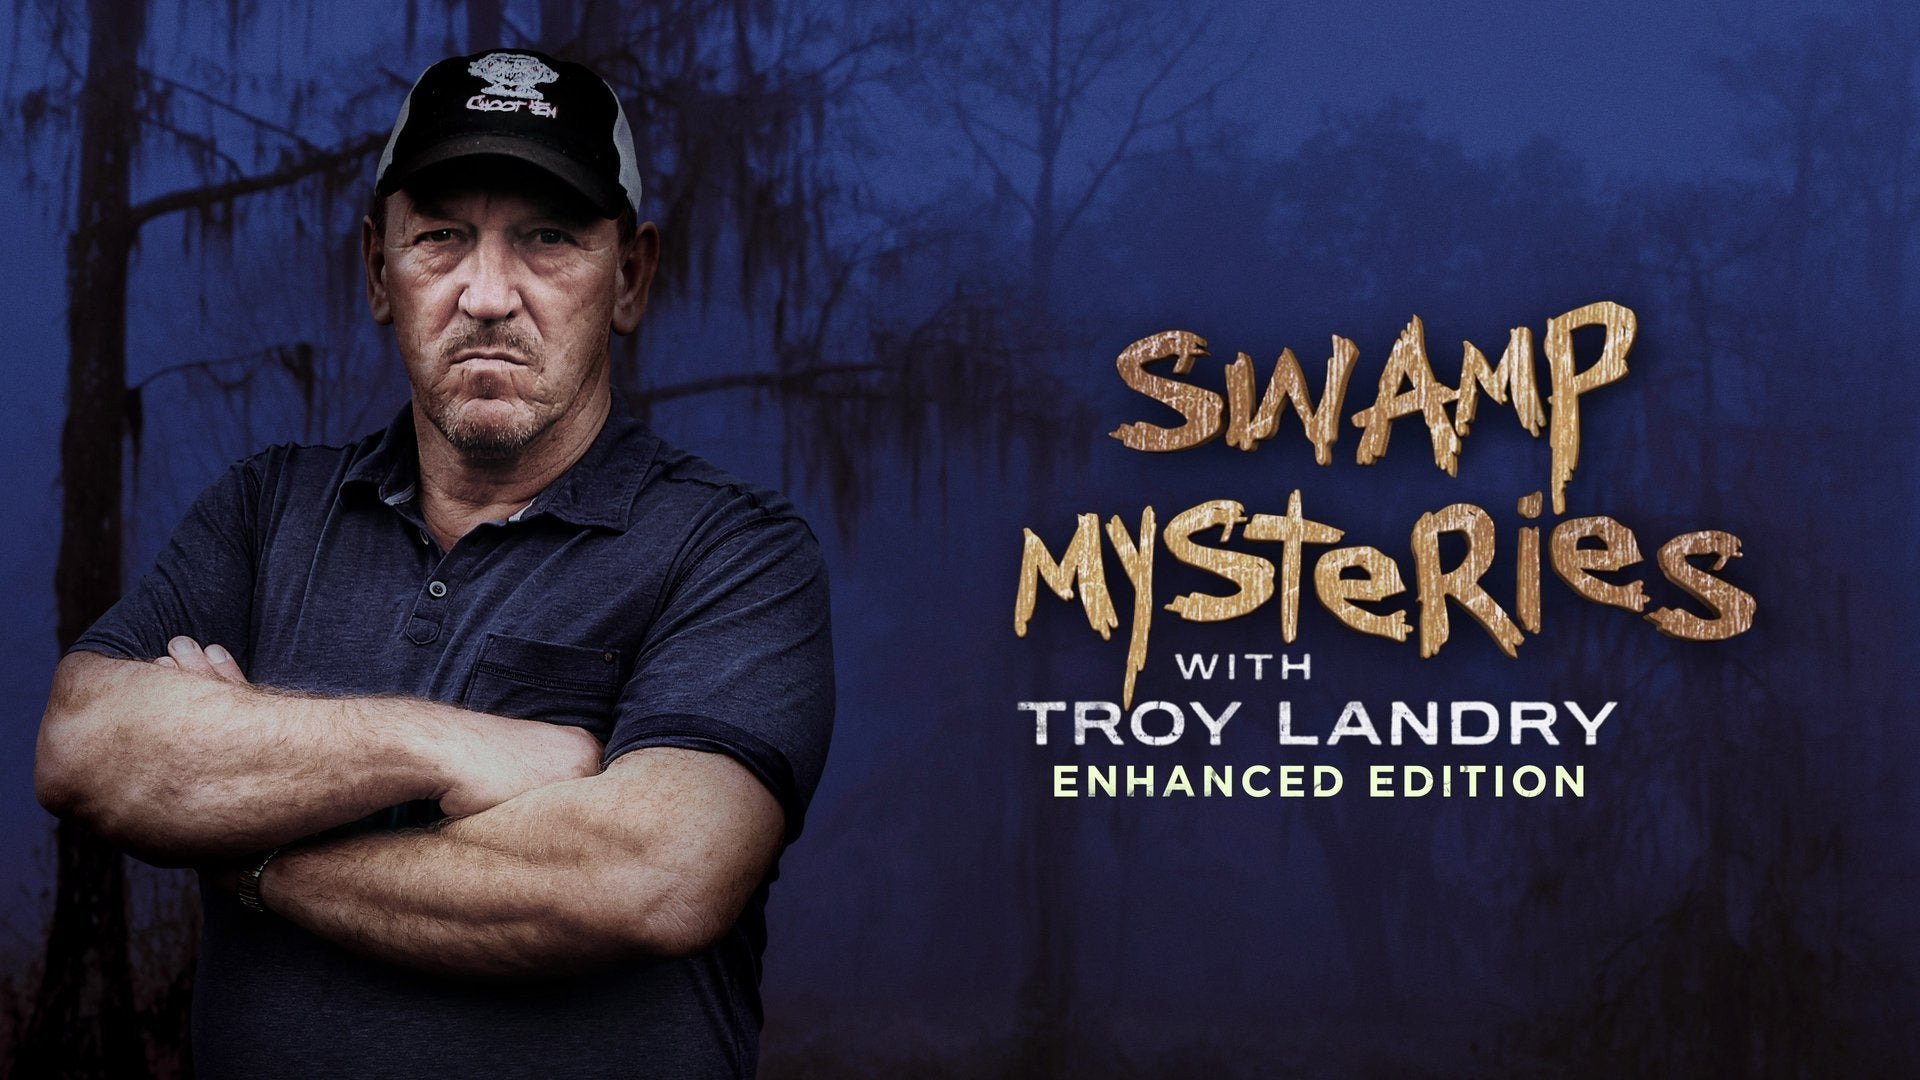 Swamp Mysteries with Troy Landry: Enhanced Edition